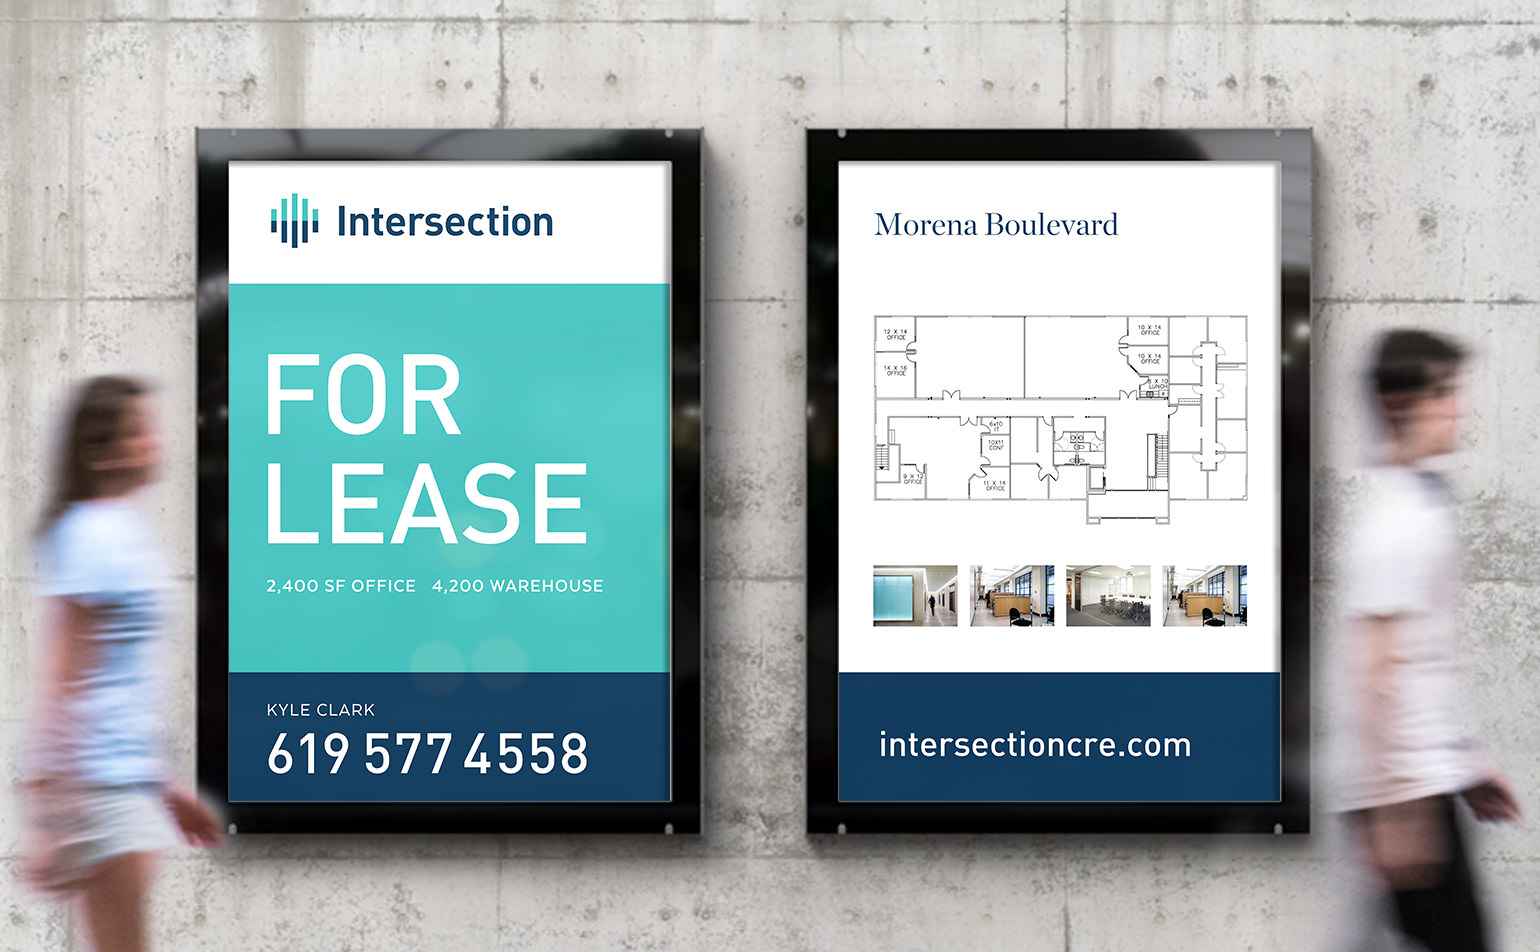 Ignyte-Branding-Agency-Intersection-Marketing-Collateral-V5-Billboard